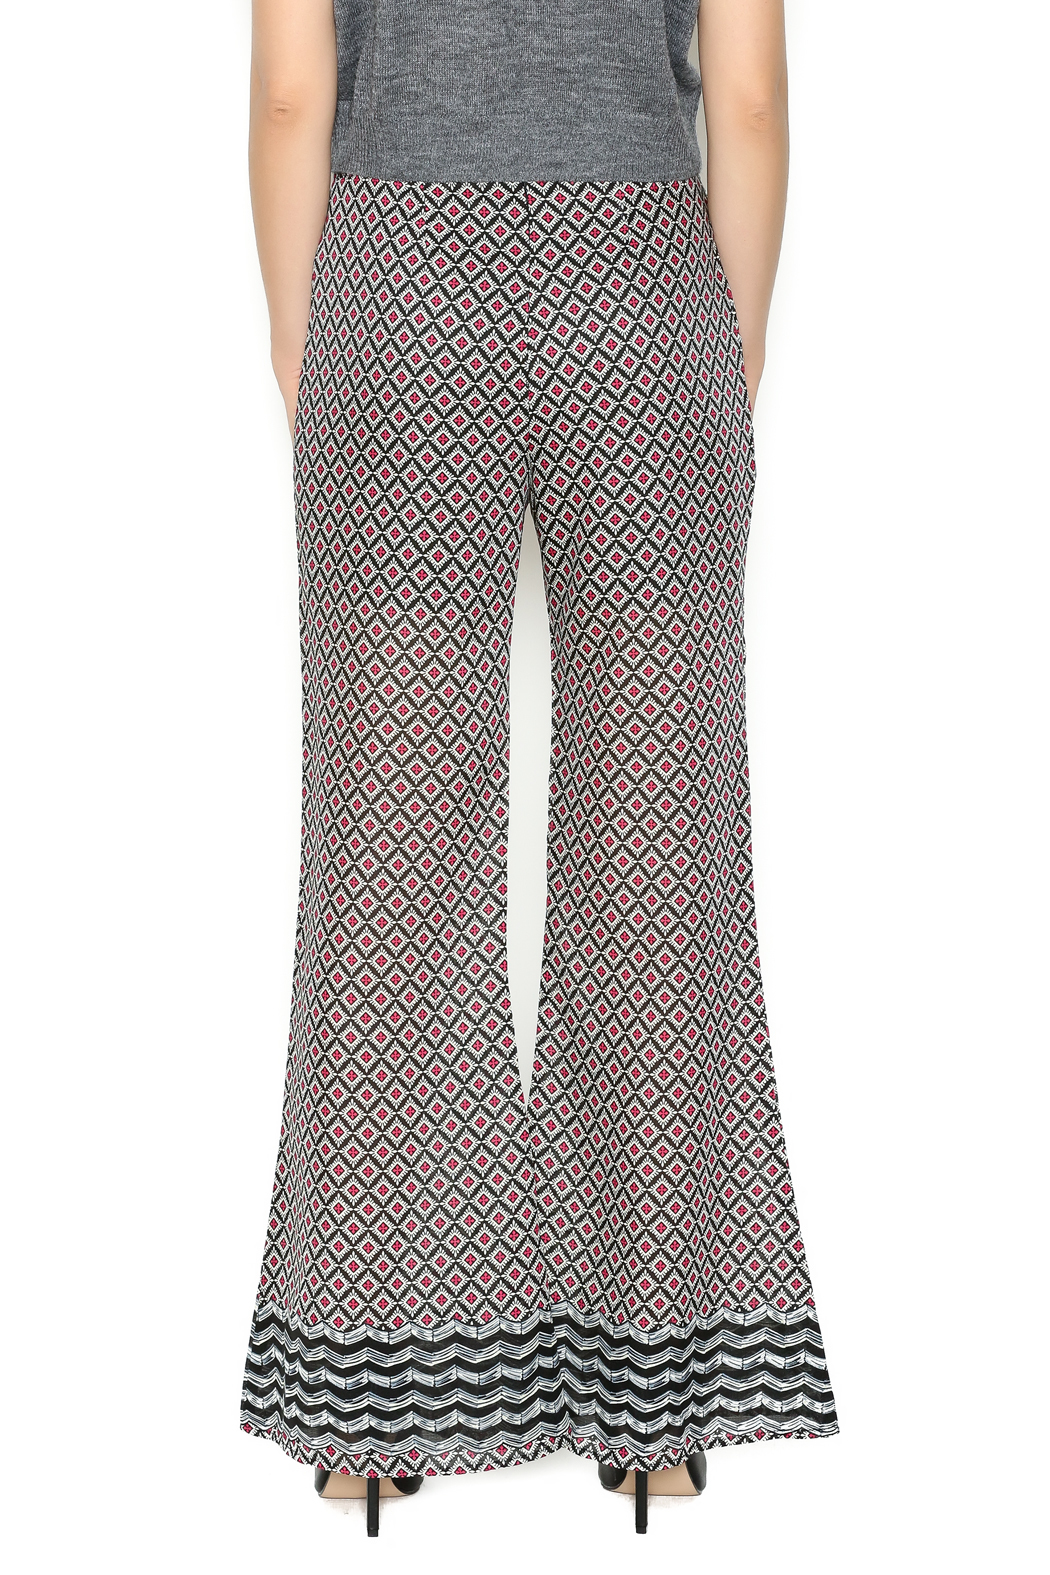 Ya las angeles Fuchsia Print Palazzo Pants - Back Cropped Image